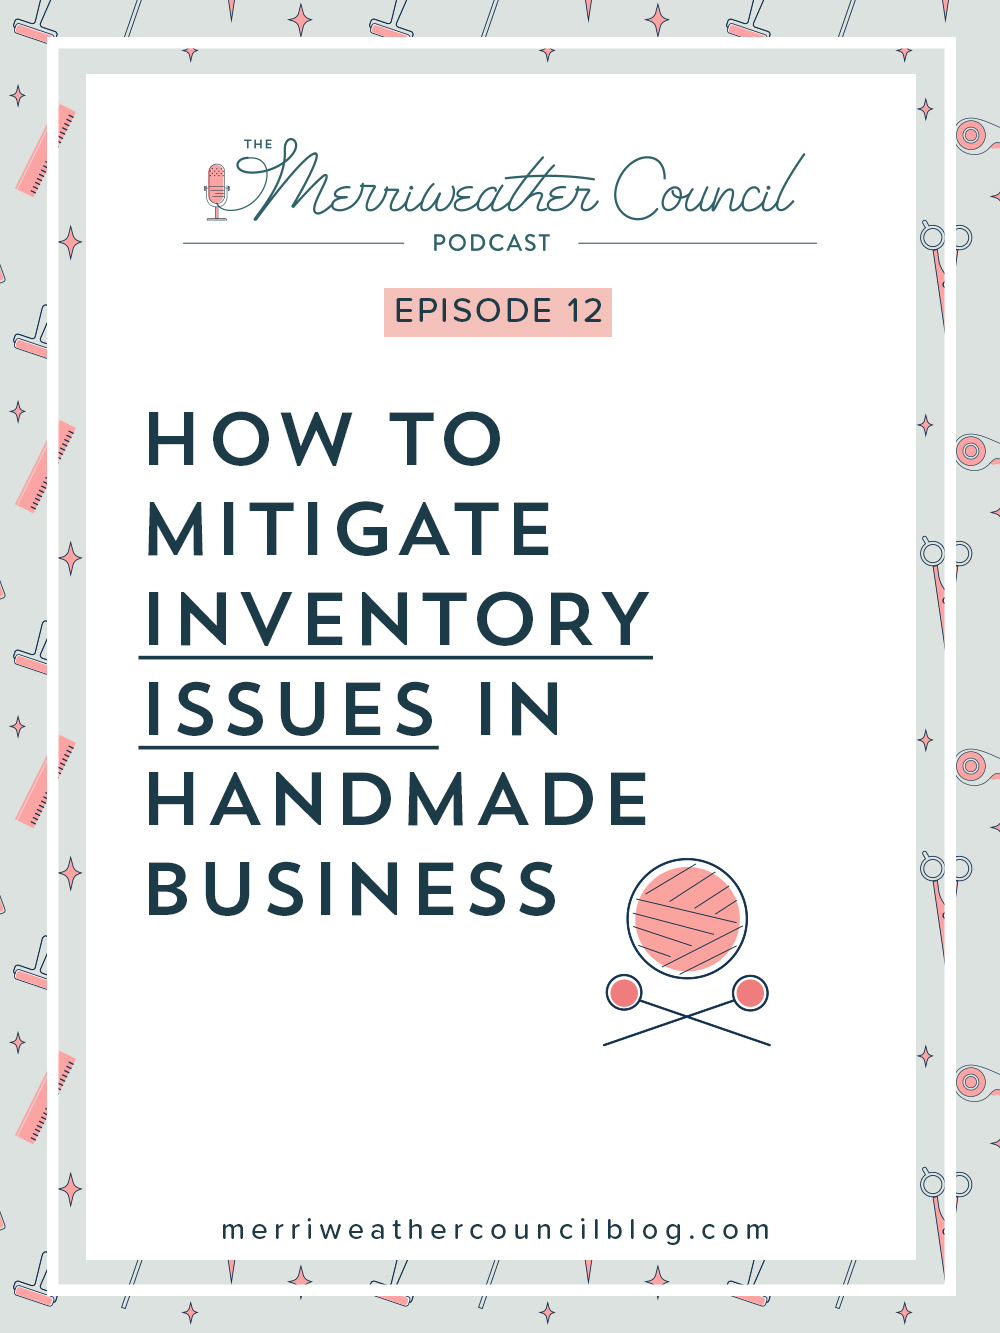 Episode 012: How to Mitigate Inventory Issues in Handmade Business | the merriweather council podcast